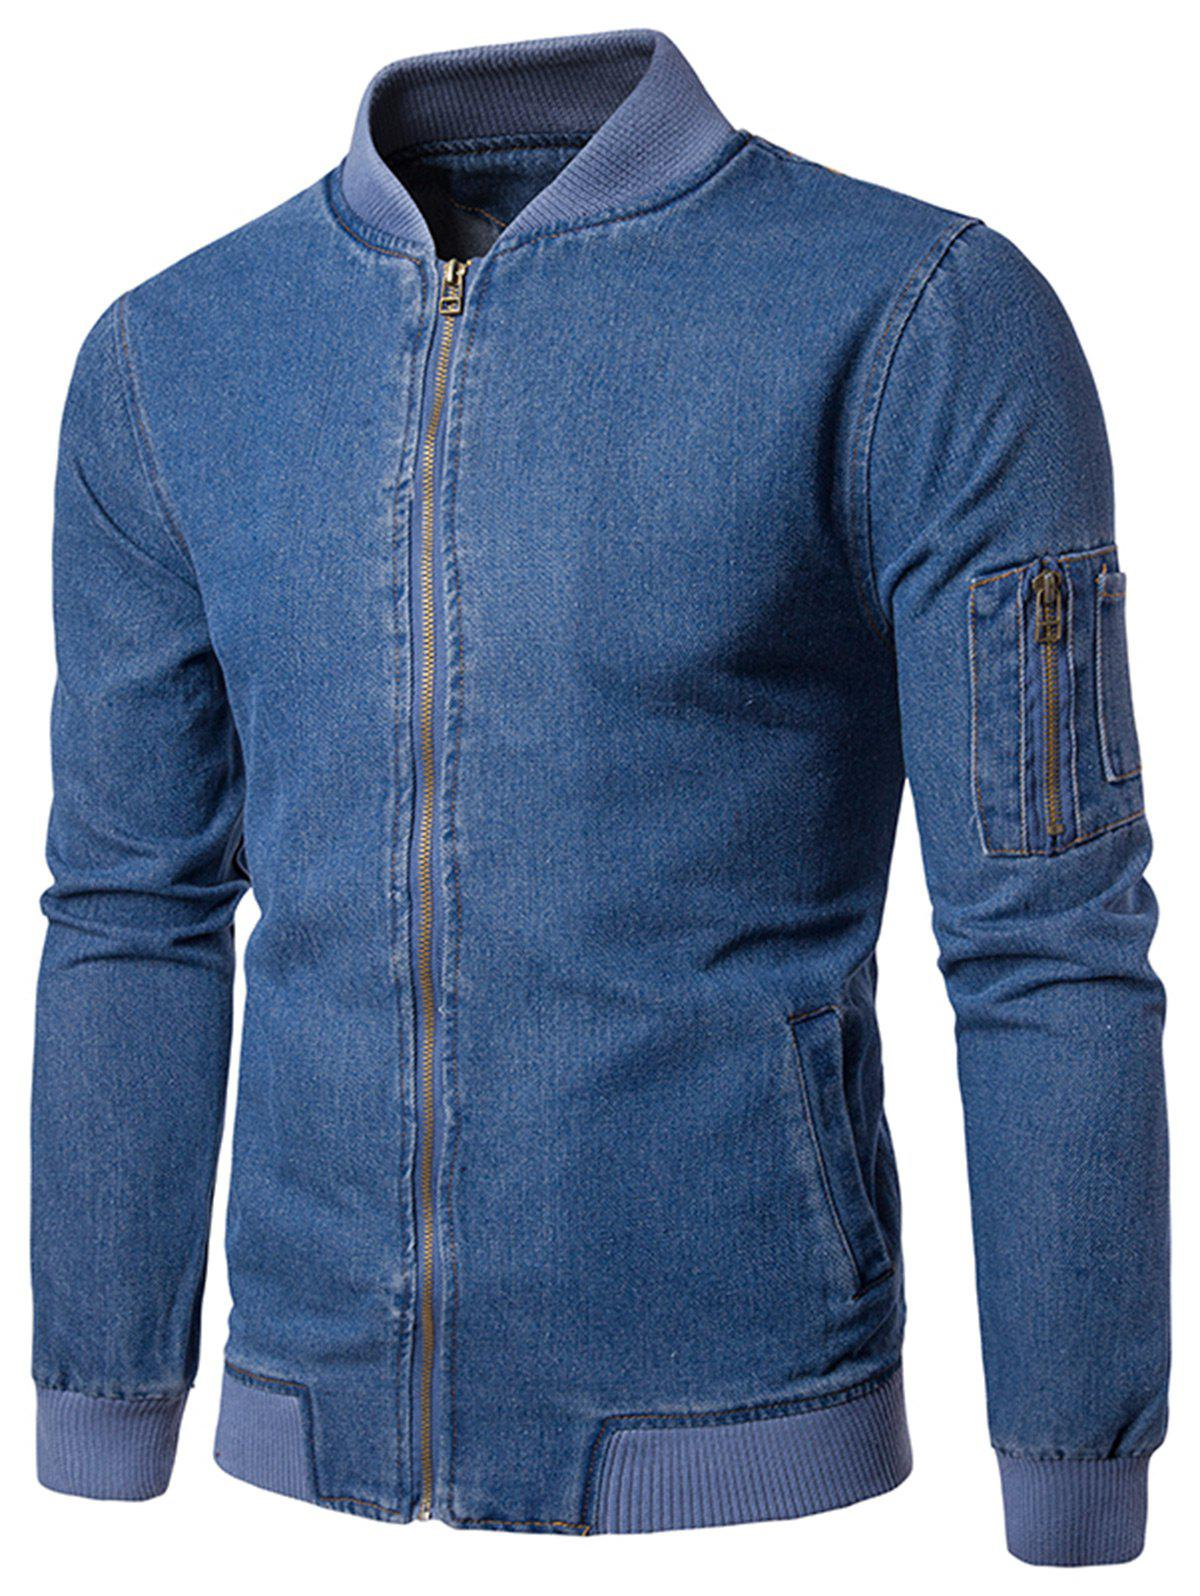 Ribbed Hem Zip Up Denim Jacket - BLUE L